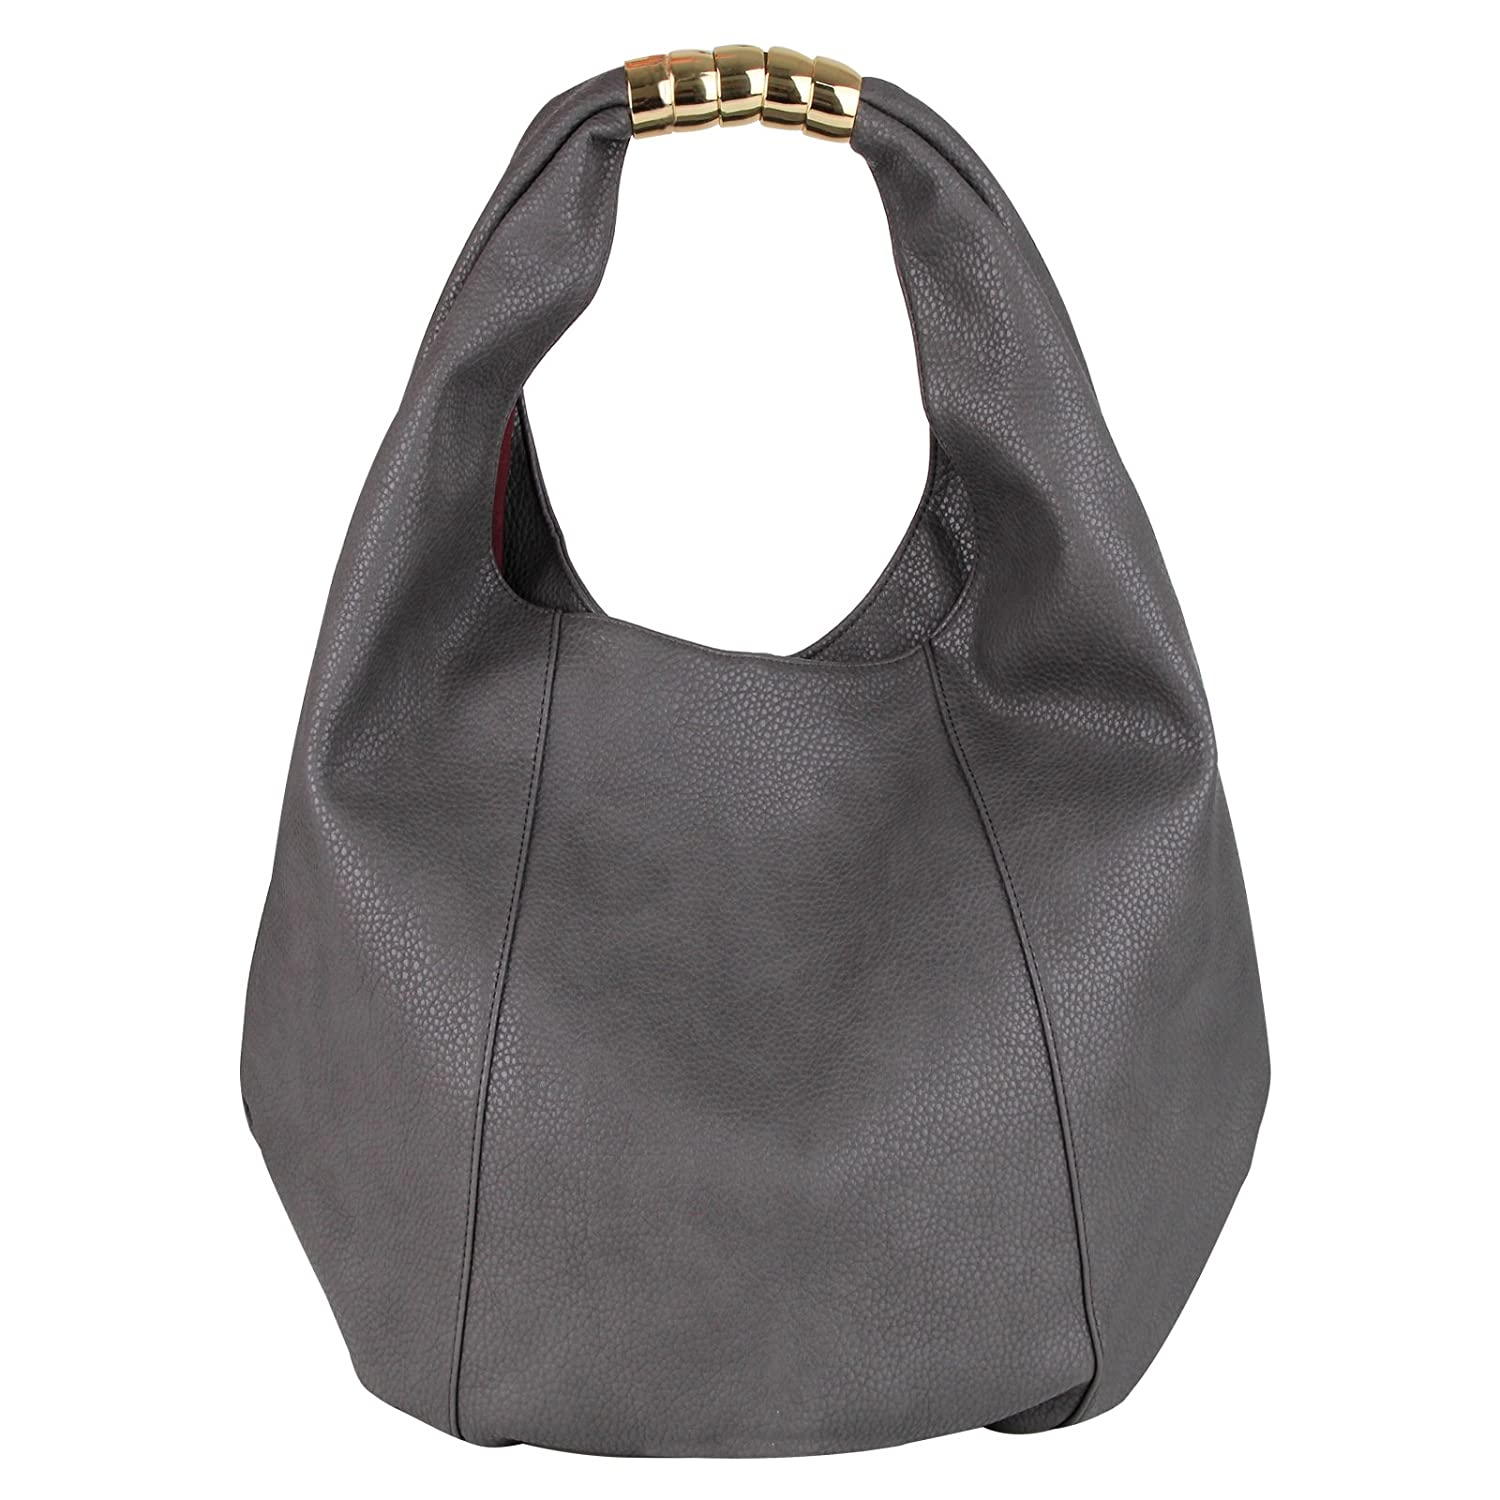 Fashionable This is a classic top-handle bag. Simple design d0698bfed1335